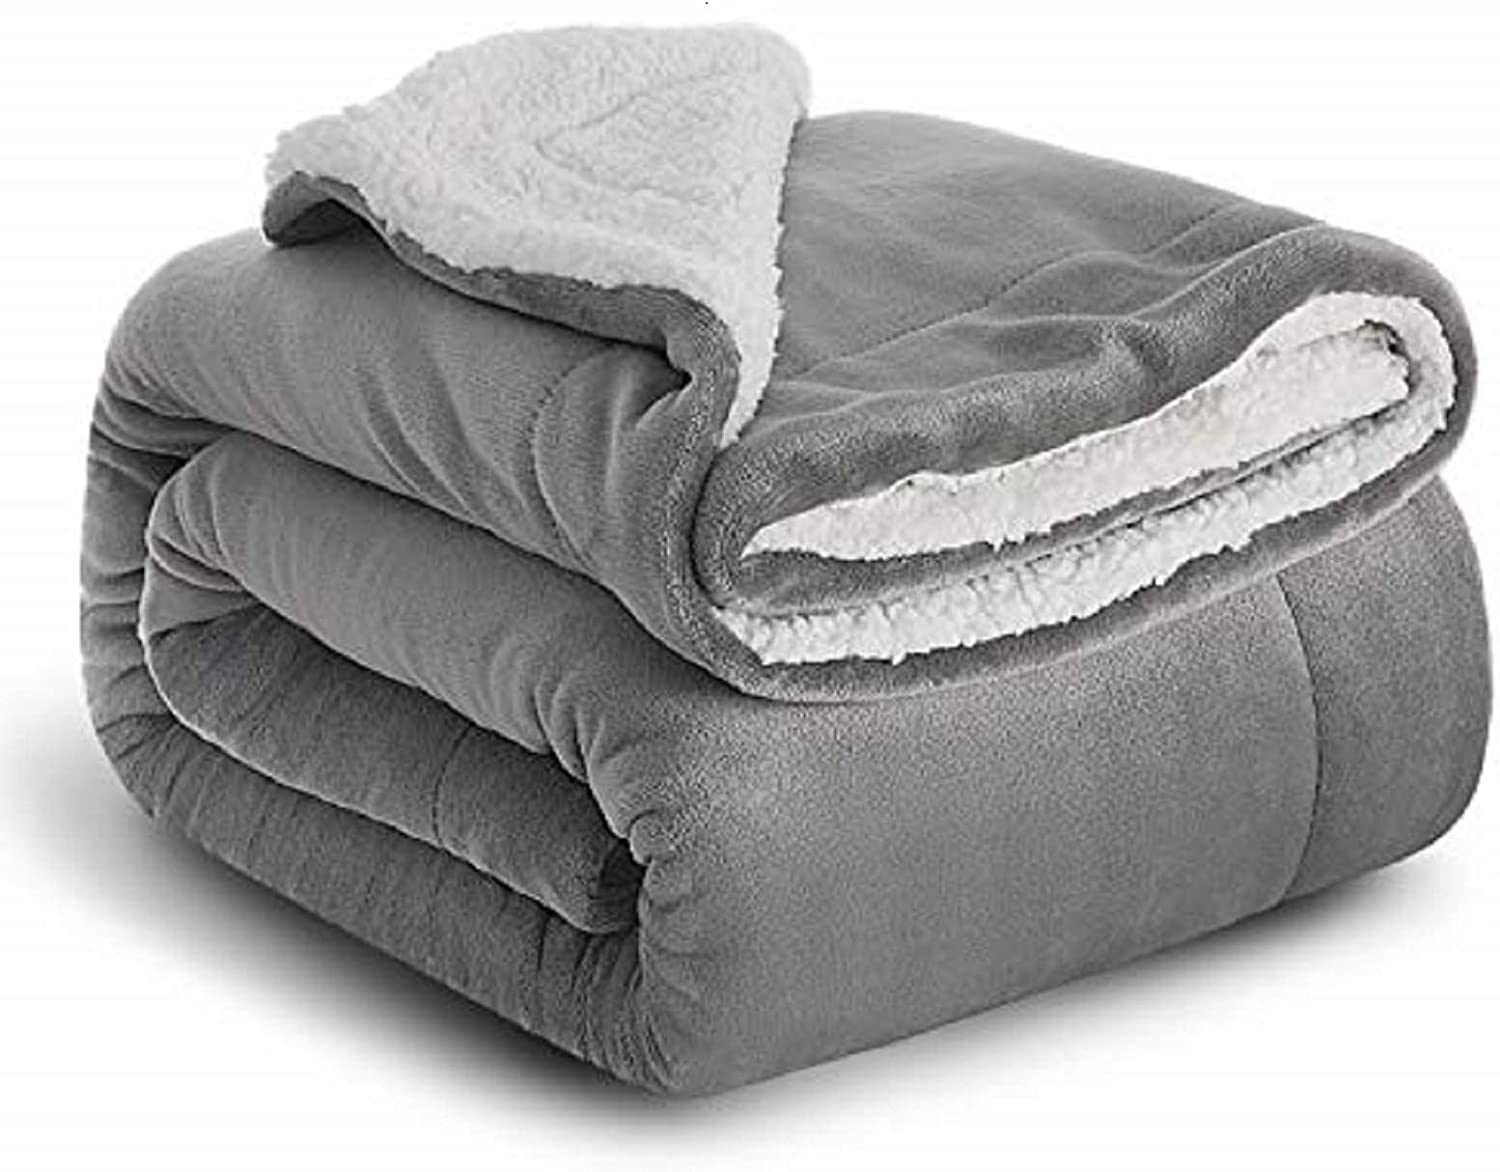 Bedsure Sherpa Blanket Grey Double Twin Size 150 X 200cm Fleece Bed Blankets Warm Fluffy Reversible Microfiber Solid Blankets For Bed And Couch Amazon Co Uk Kitchen Home